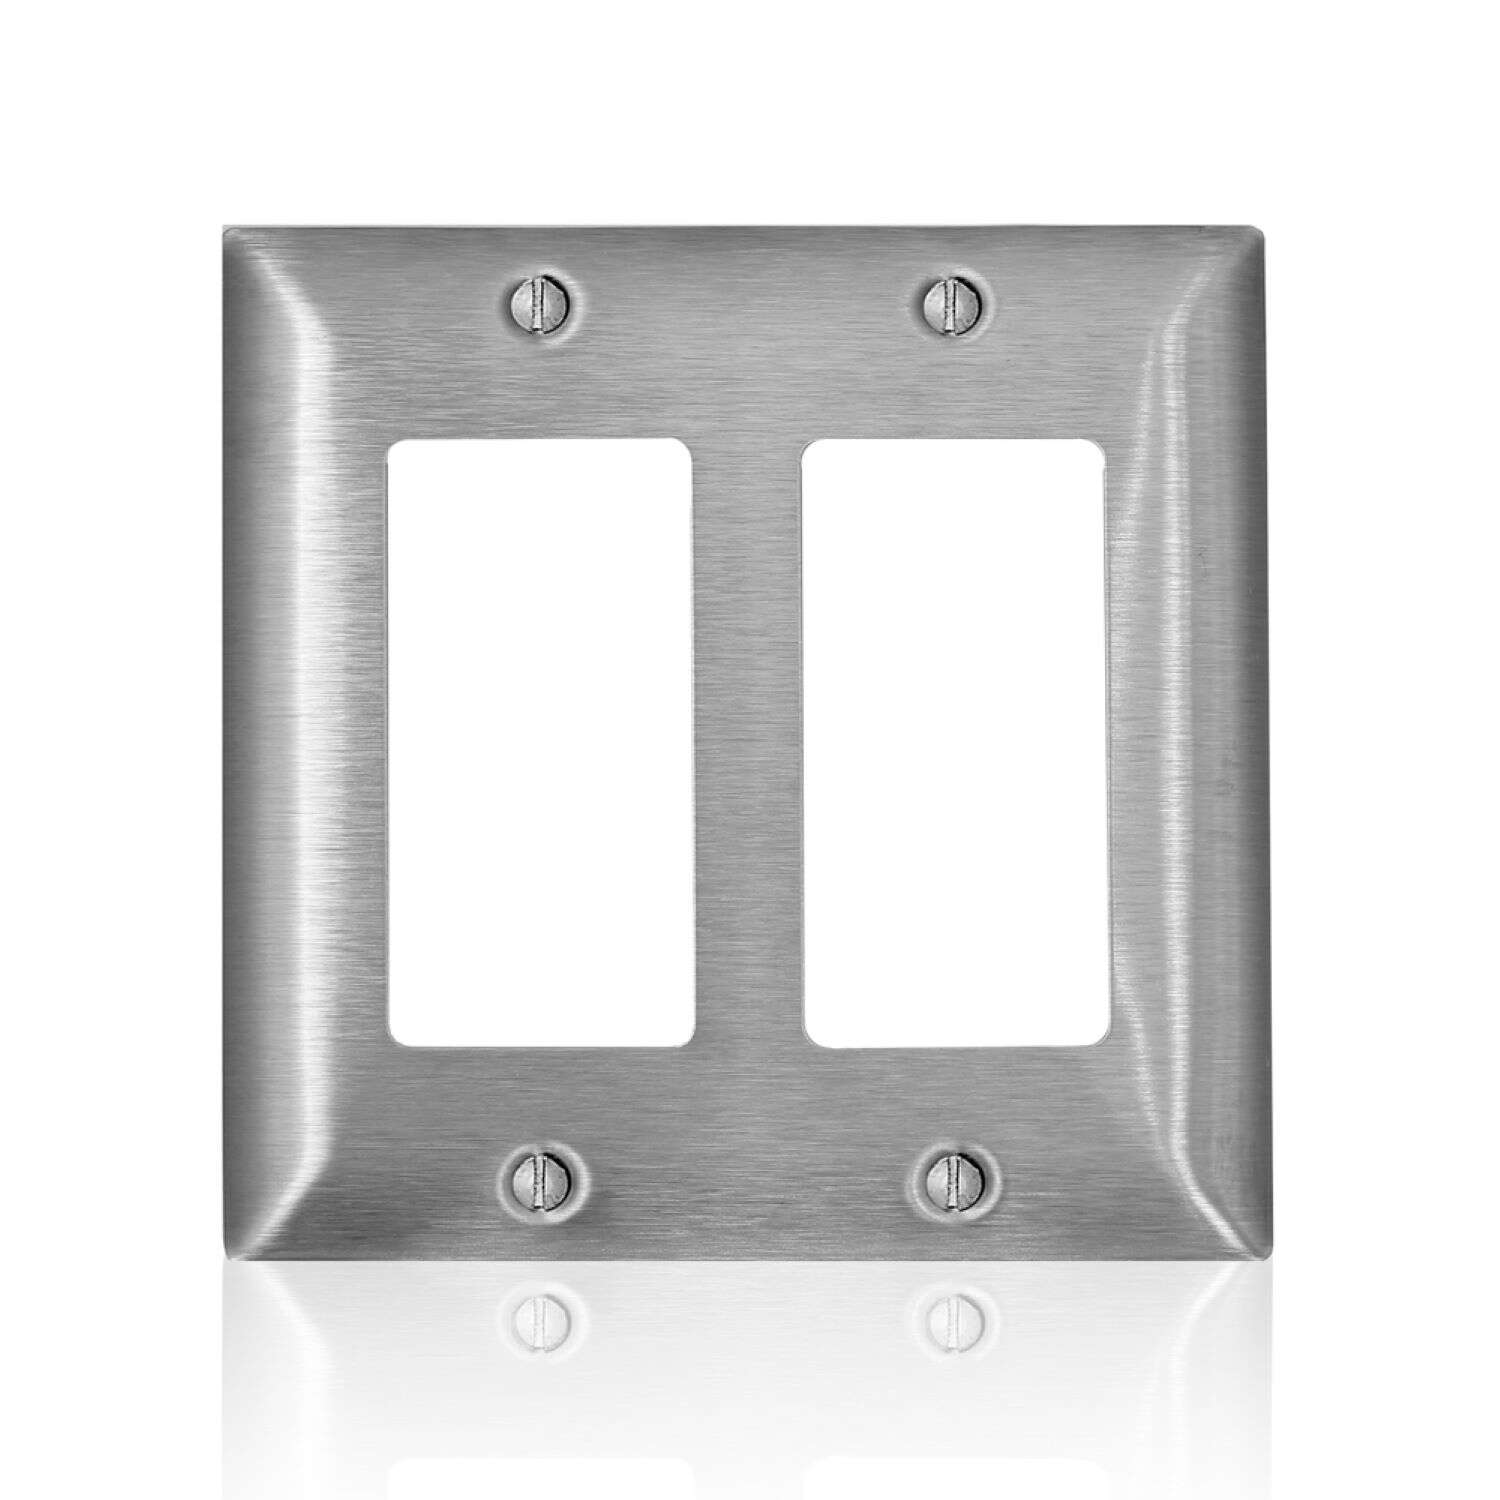 Leviton  C-Series  Stainless Steel  2 gang Metal  Decora/GFCI  Wall Plate  1 pk